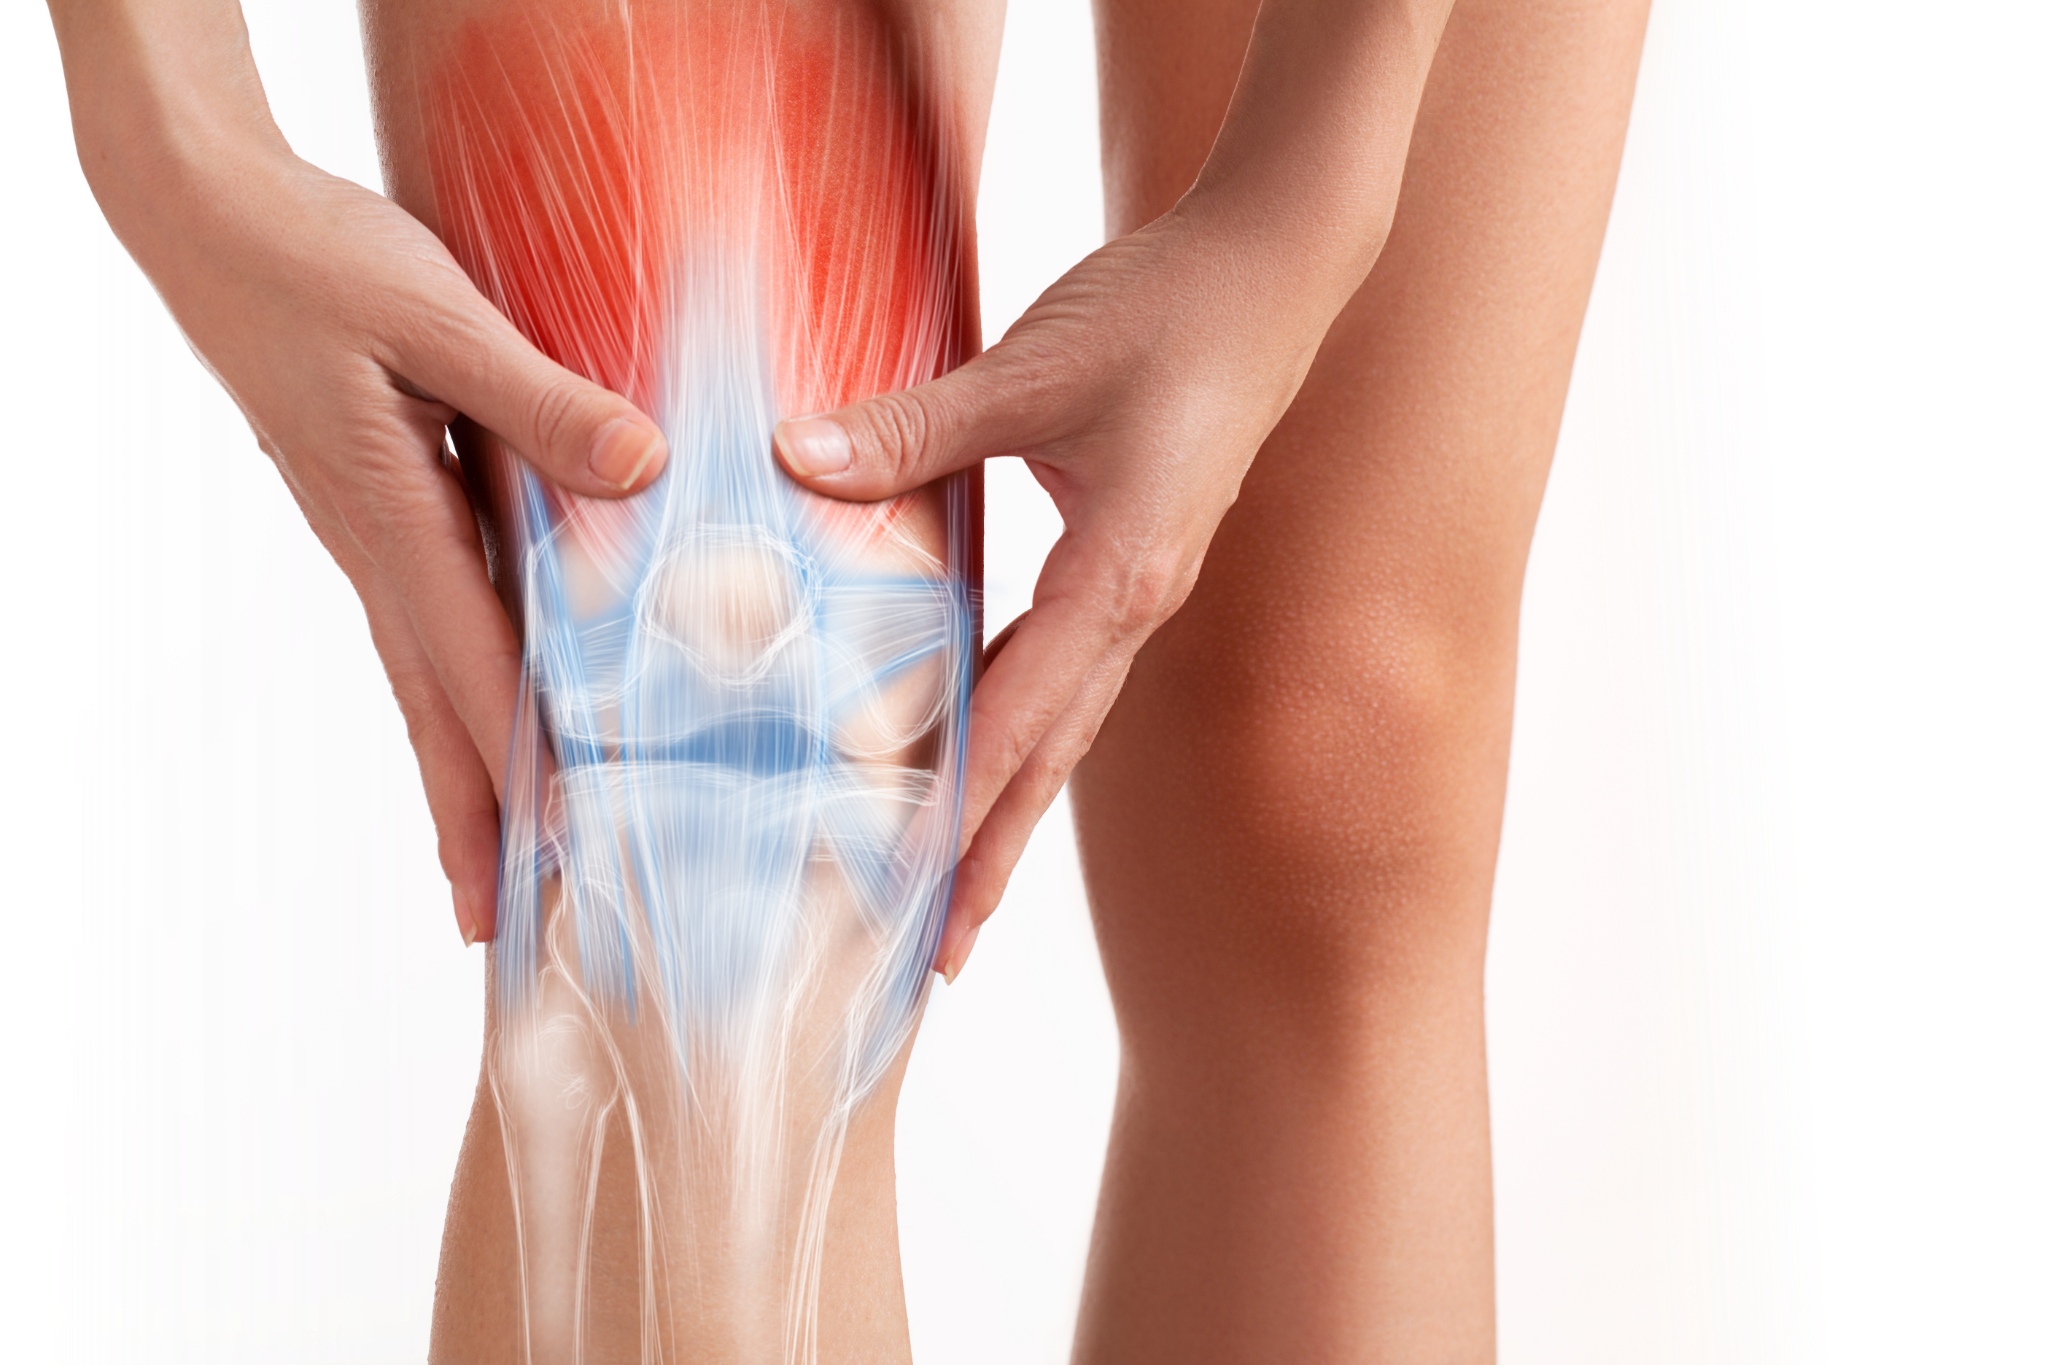 Rendering of knee with bones, tendons and ligaments showing; emphasising knee pain.